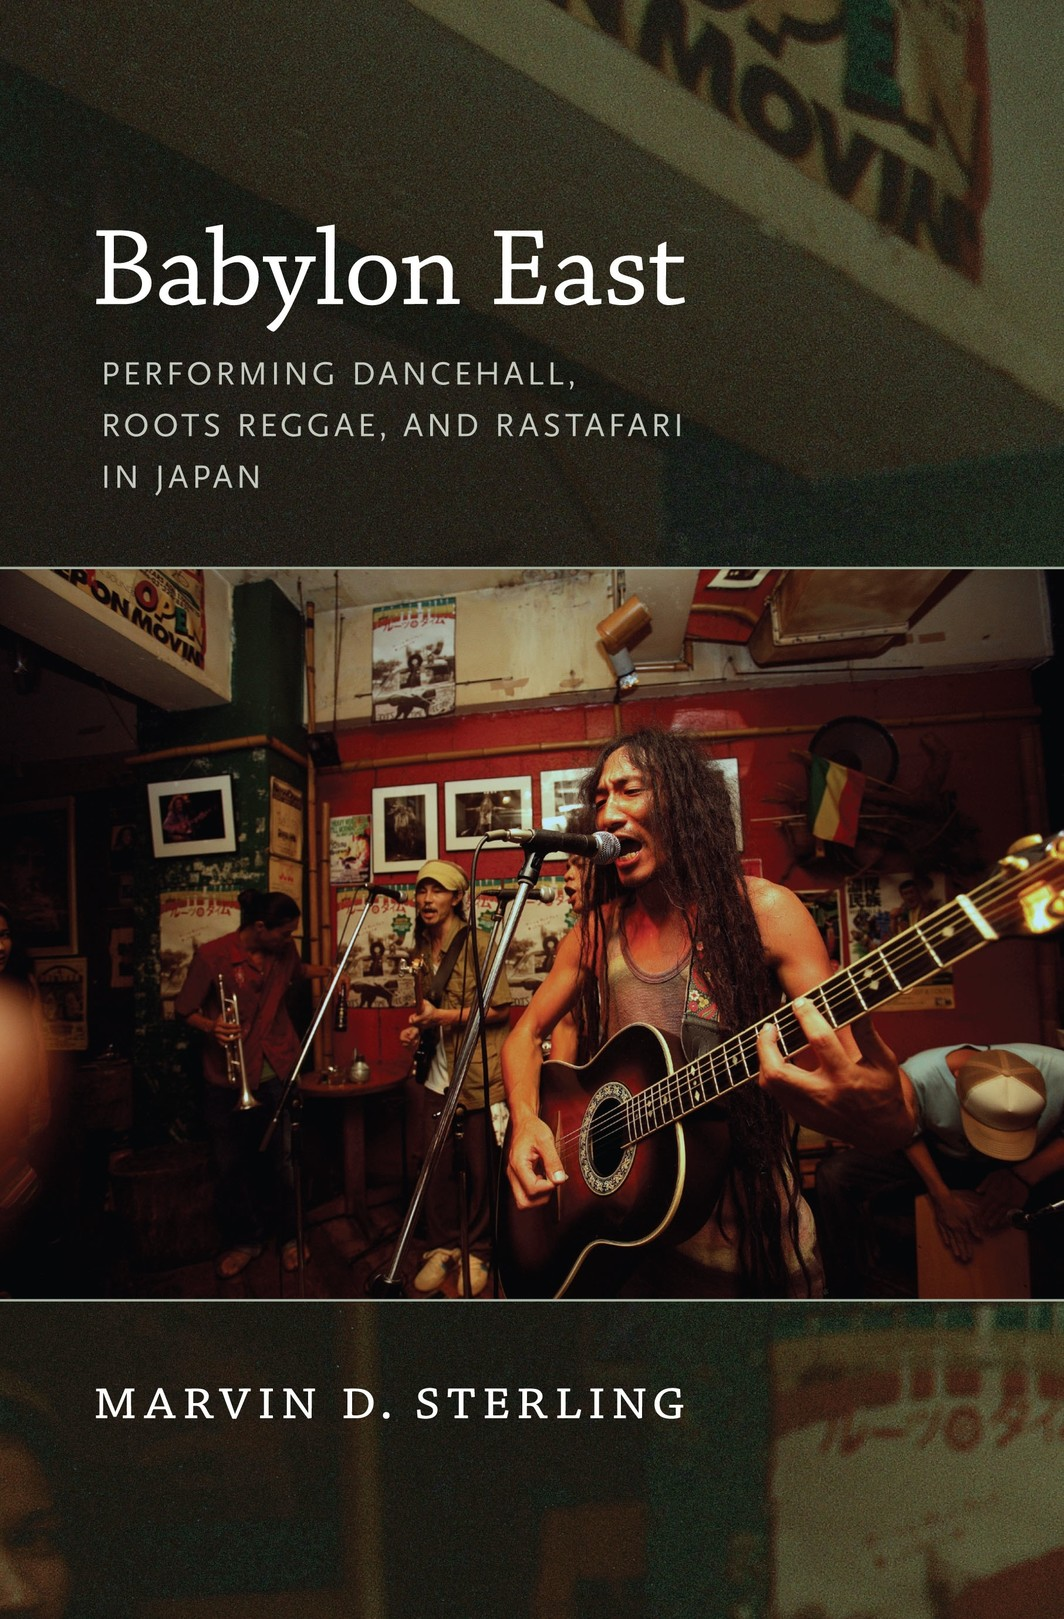 The cover of Babylon East: Performing Dancehall, Roots Reggae, and Rastafari in Japan